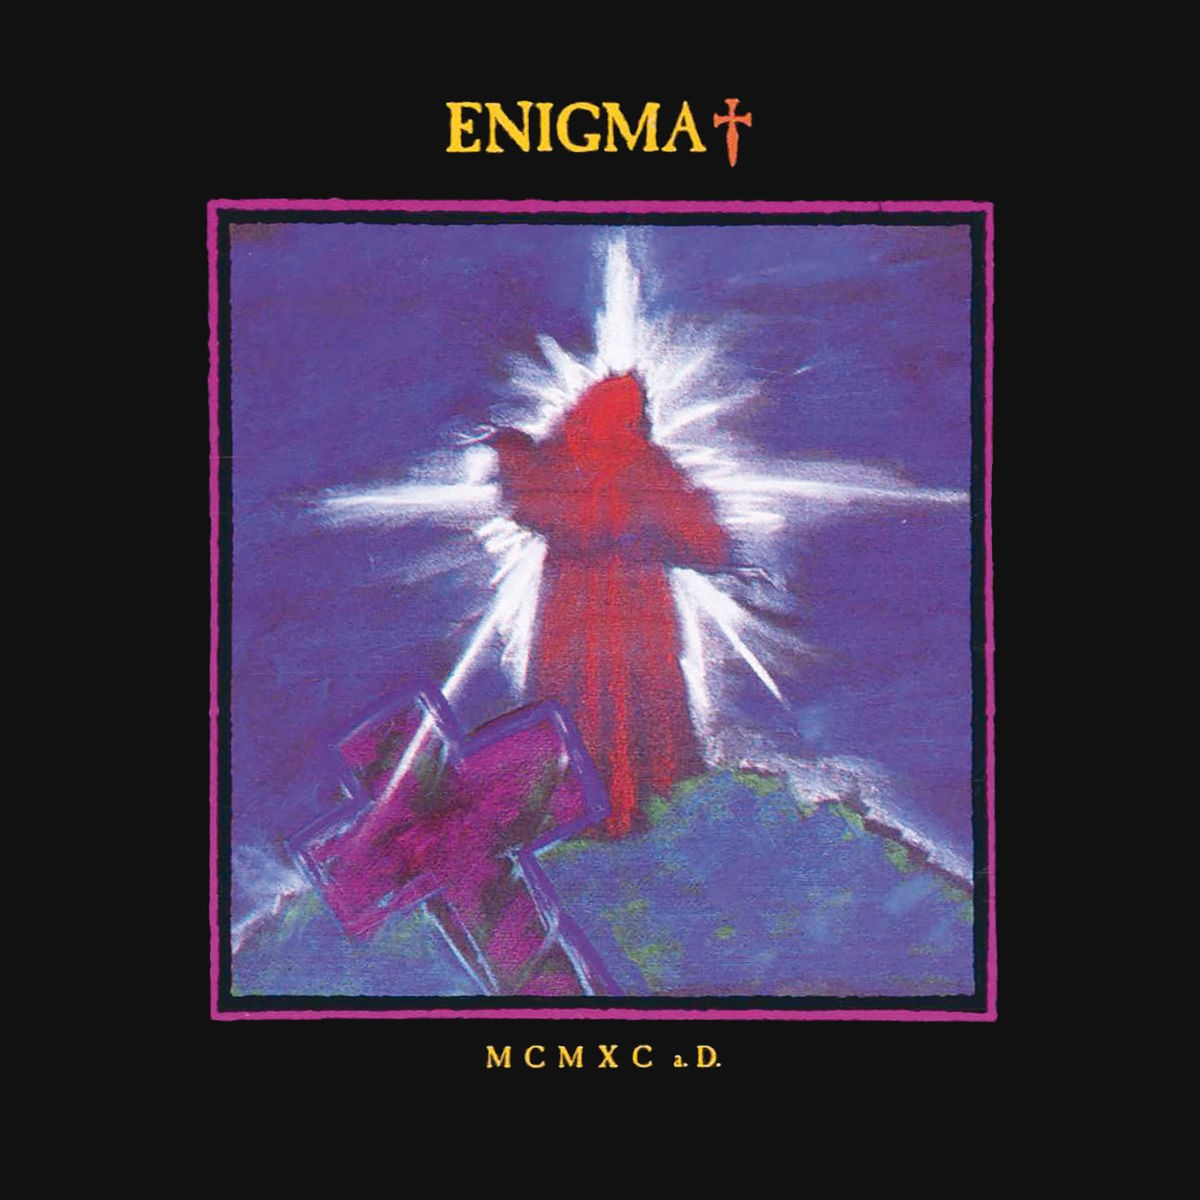 Enigma - MCMXC a.D. CD - 00777 7862242